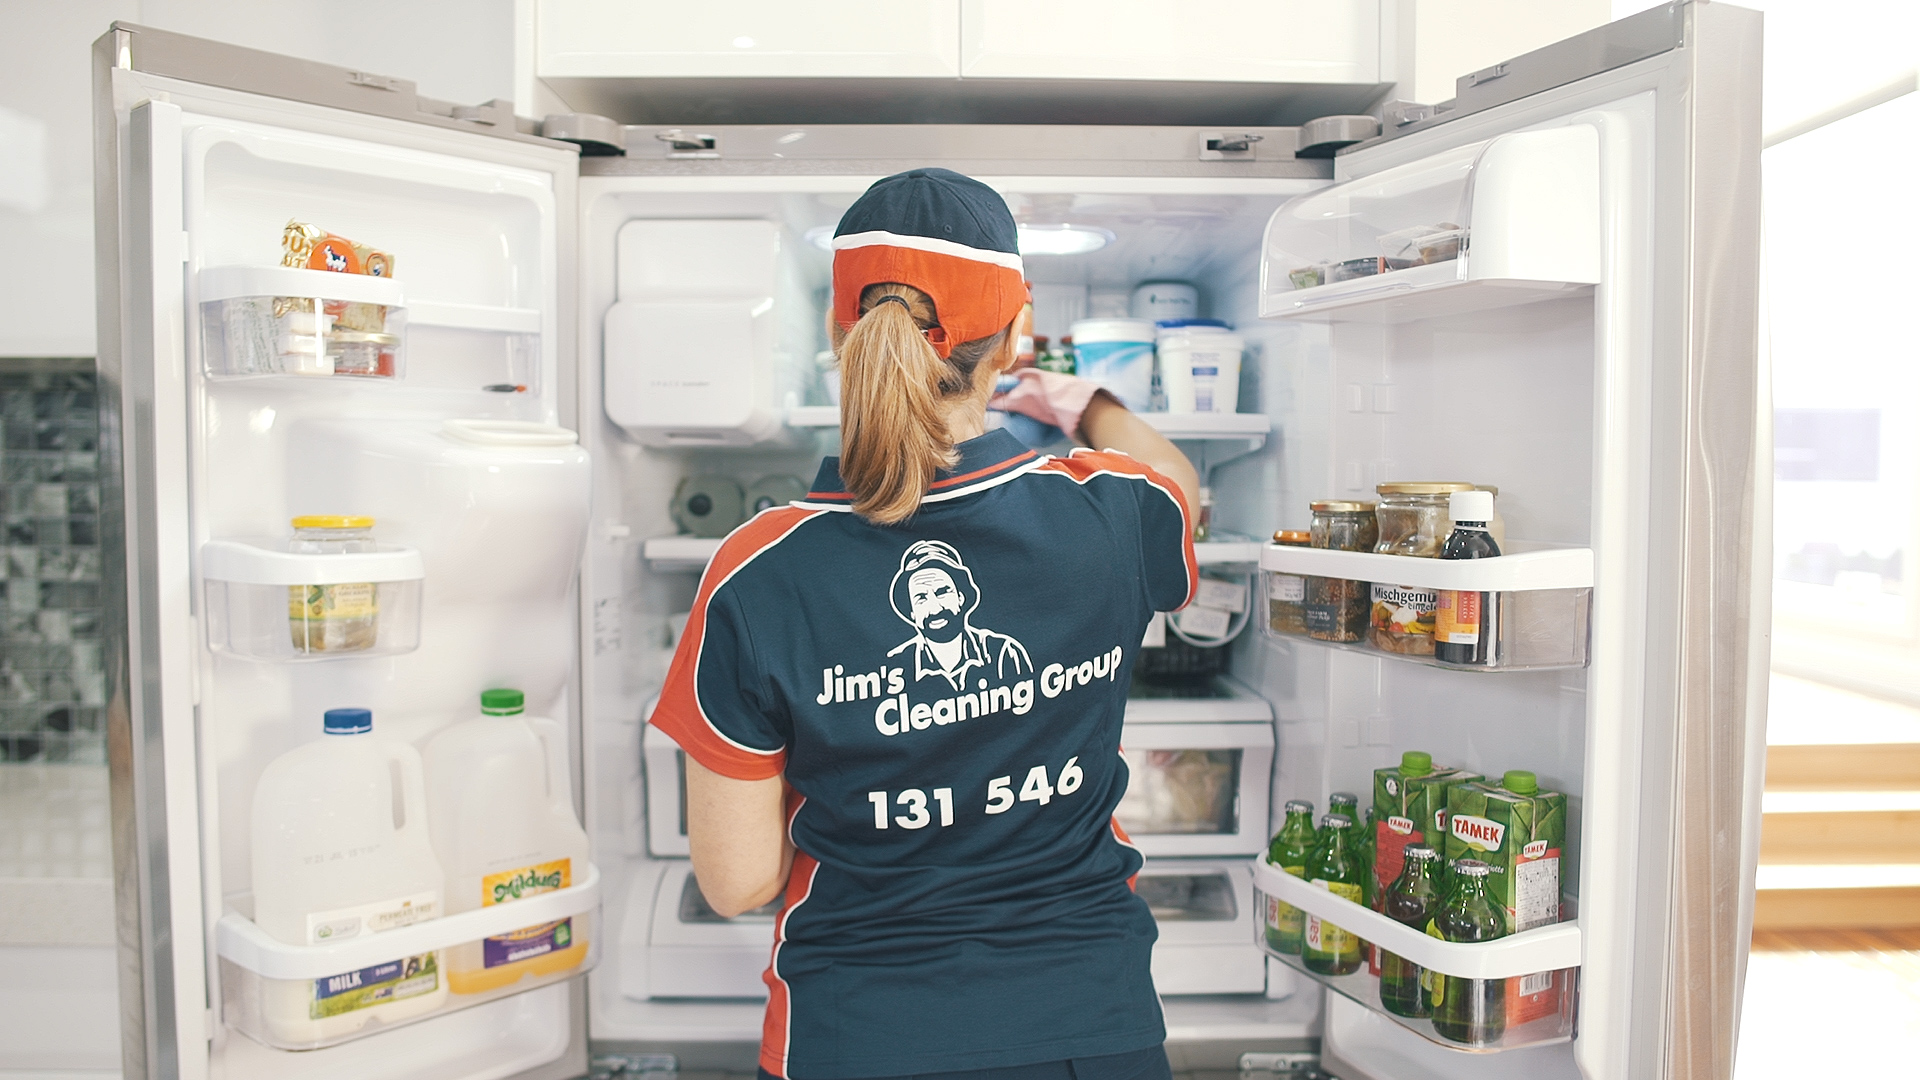 Jim's Cleaning Gungahlin - Mount Keira, NSW 2500 - (01) 3154 1546 | ShowMeLocal.com